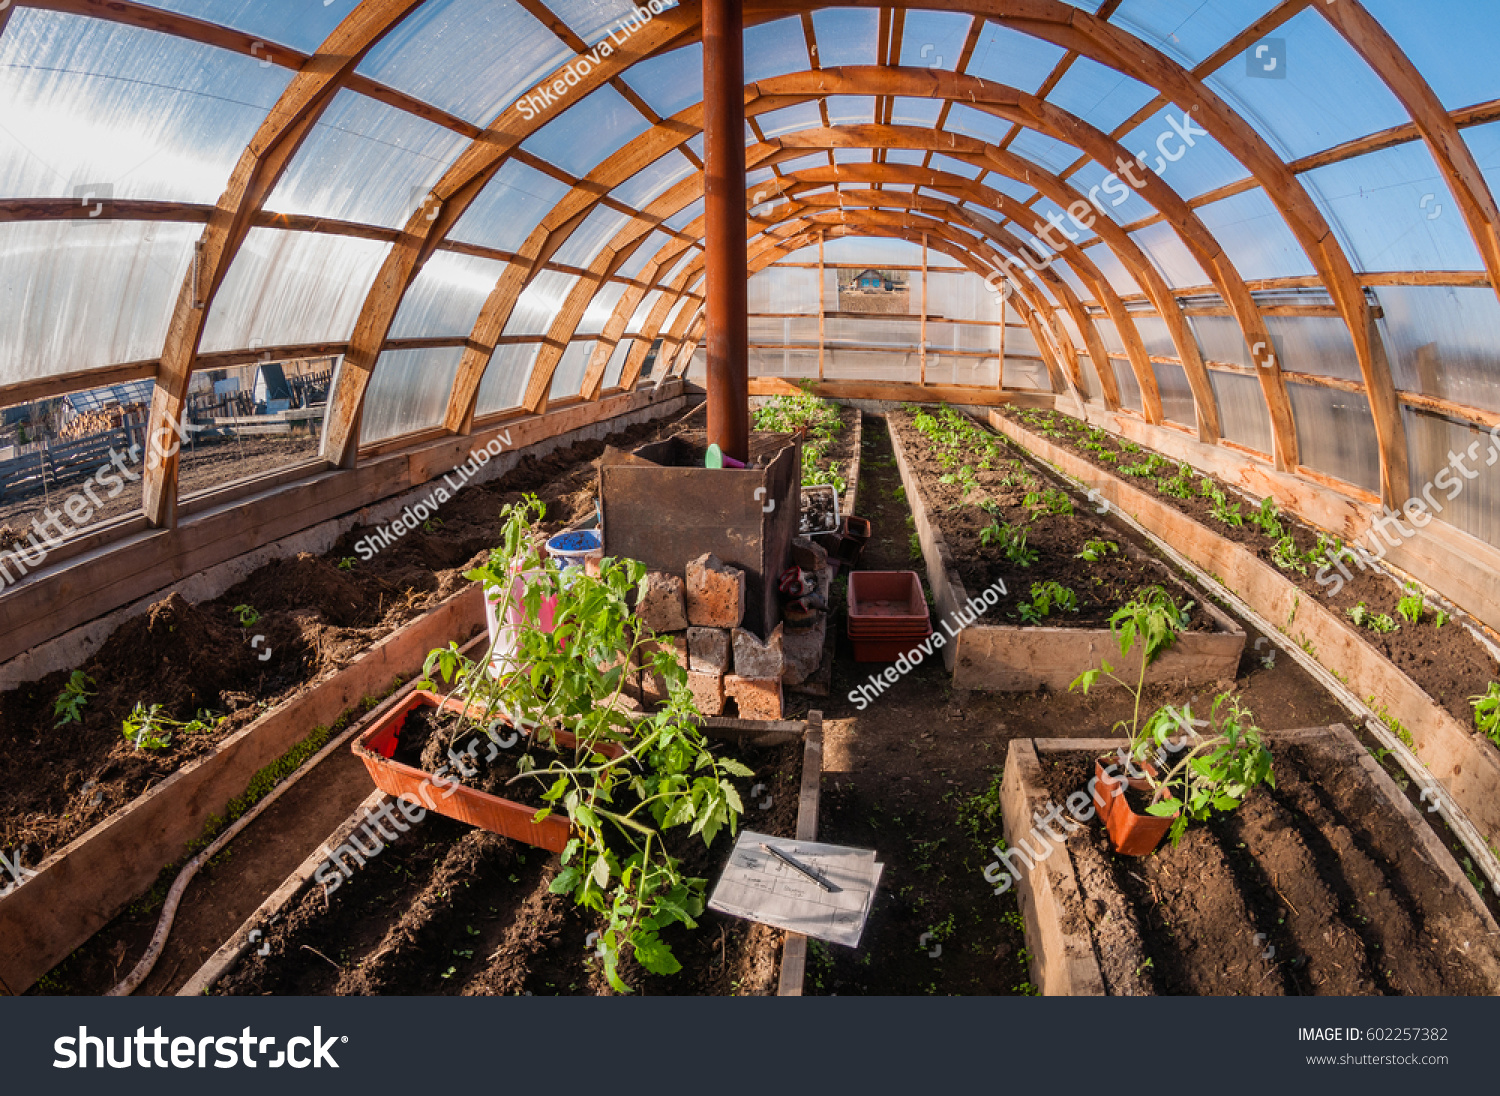 Preparing greenhouses for the new season in spring. 4 important steps how to prepare a greenhouse for planting in the spring 90